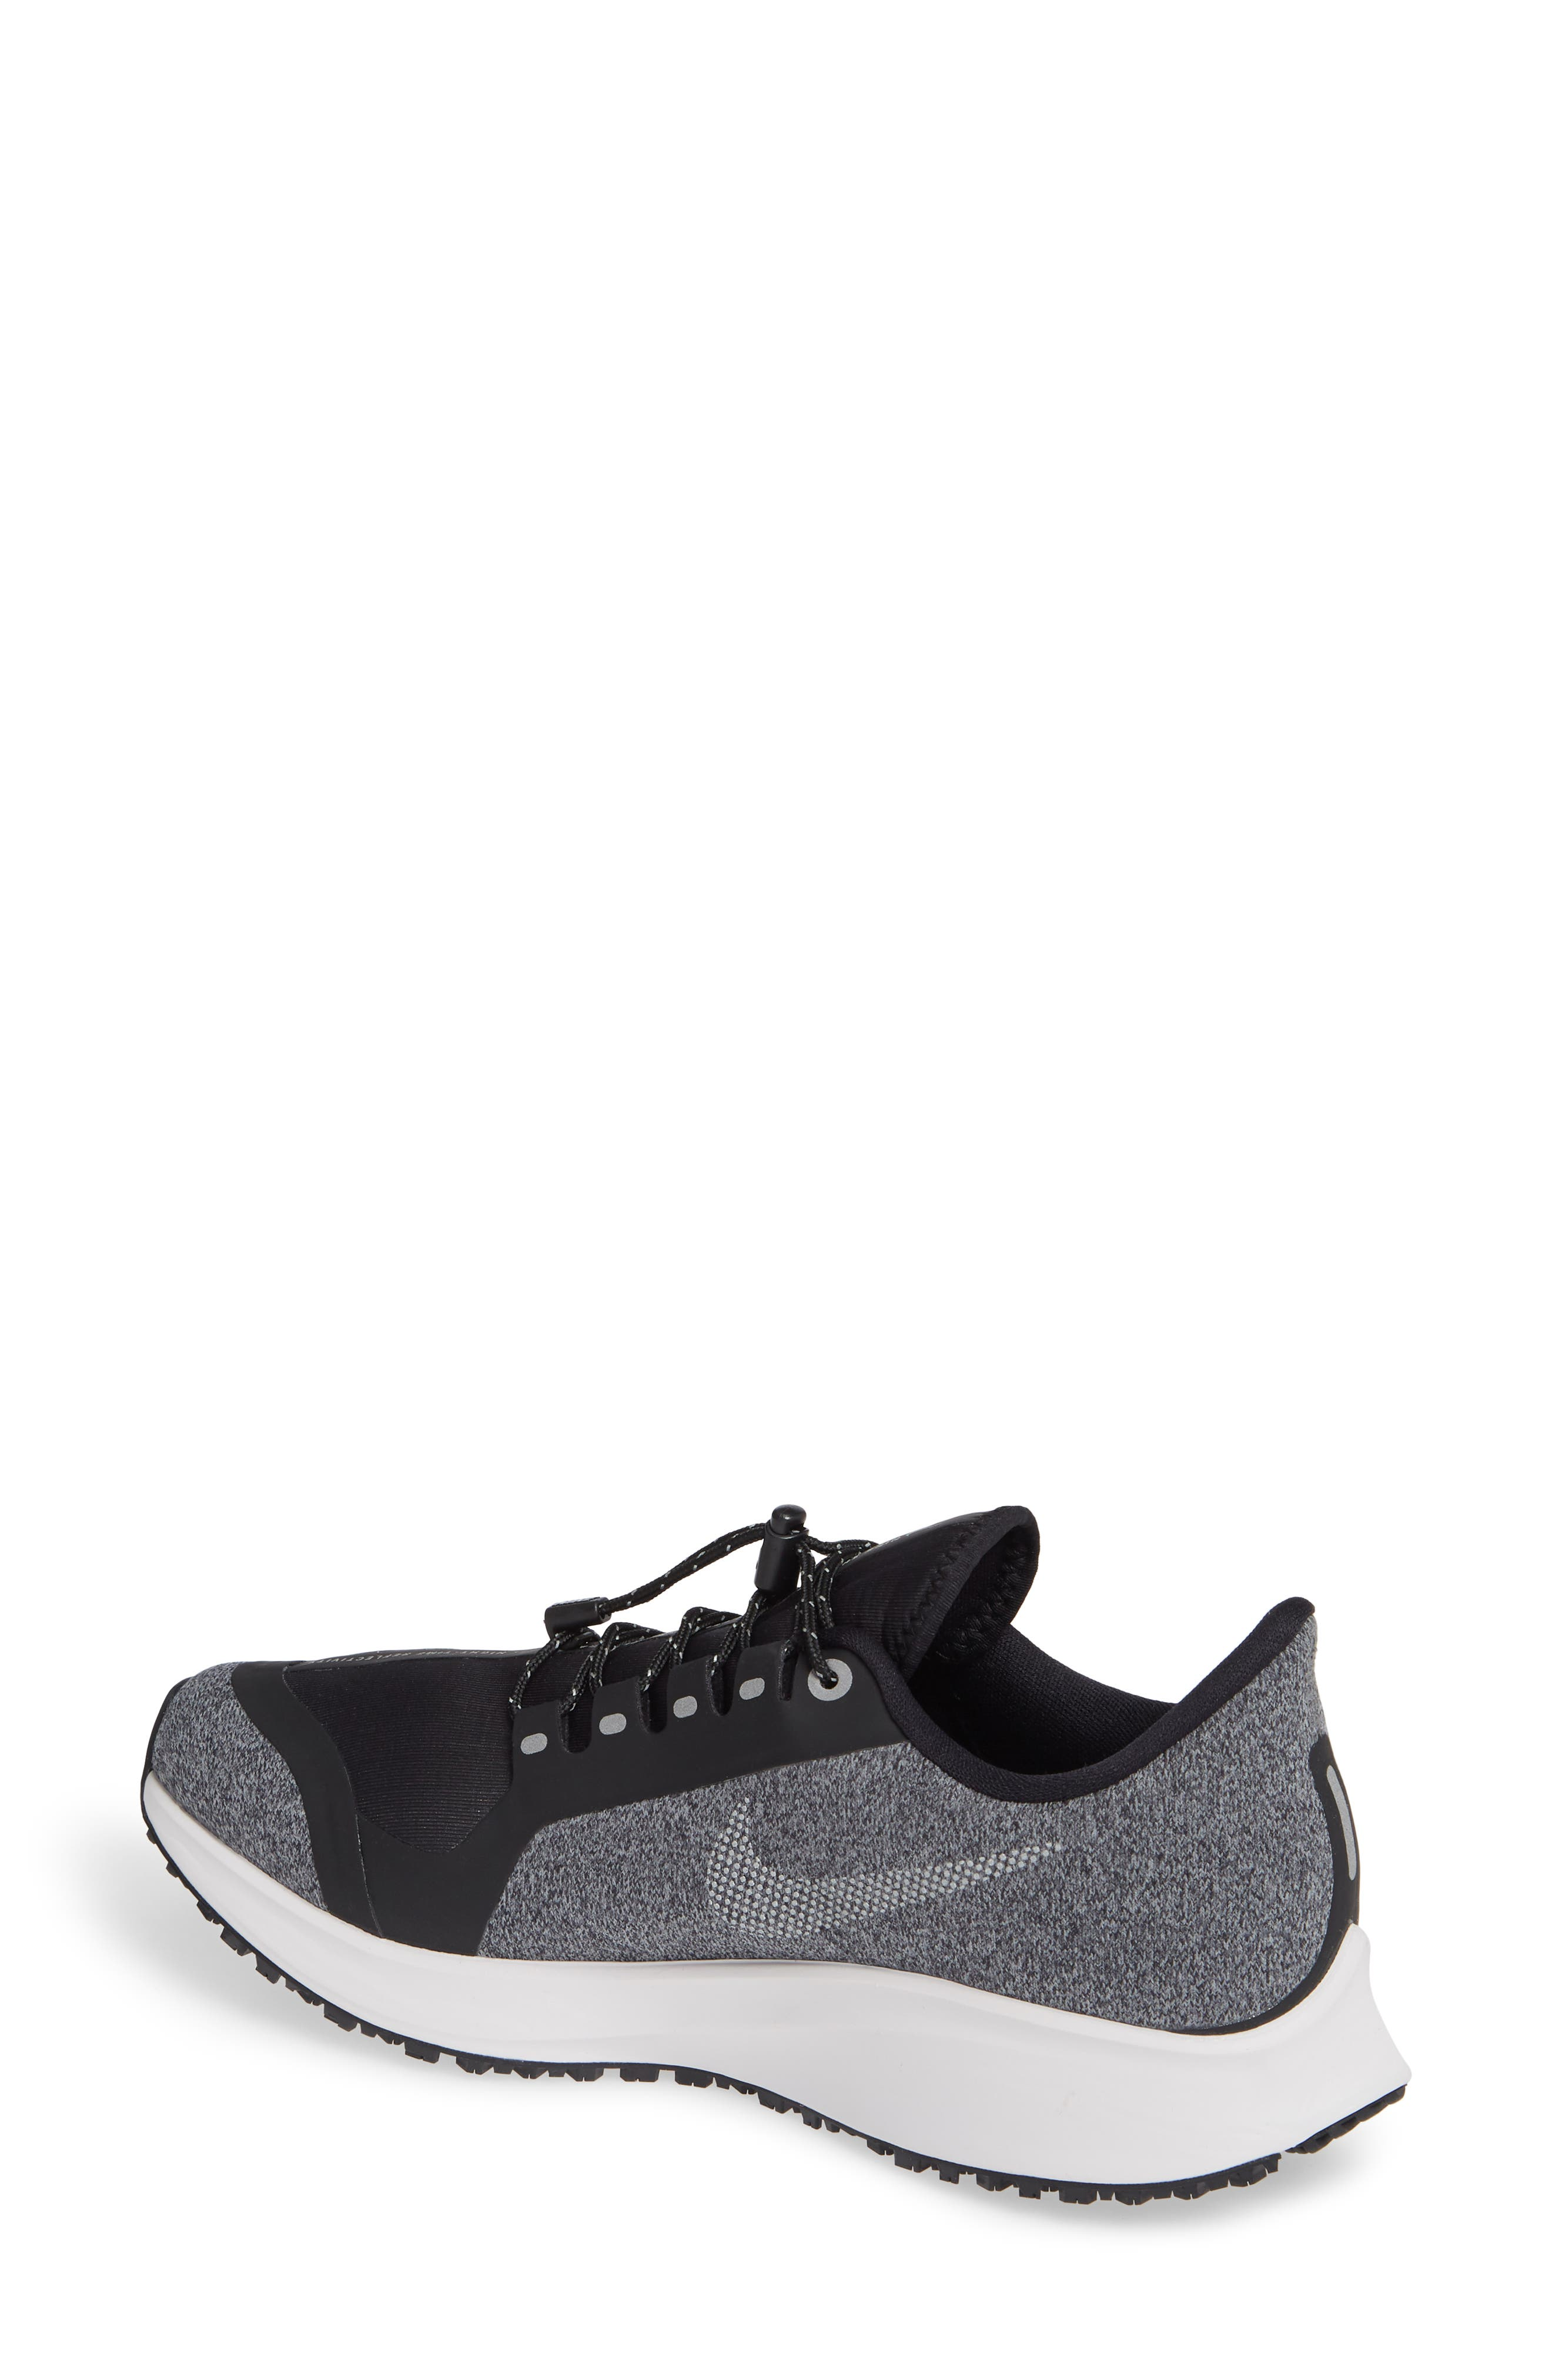 NIKE, Air Zoom Pegasus 35 Shield GS Water Repellent Running Shoe, Alternate thumbnail 2, color, BLACK/ WHITE-COOL GREY-GREY